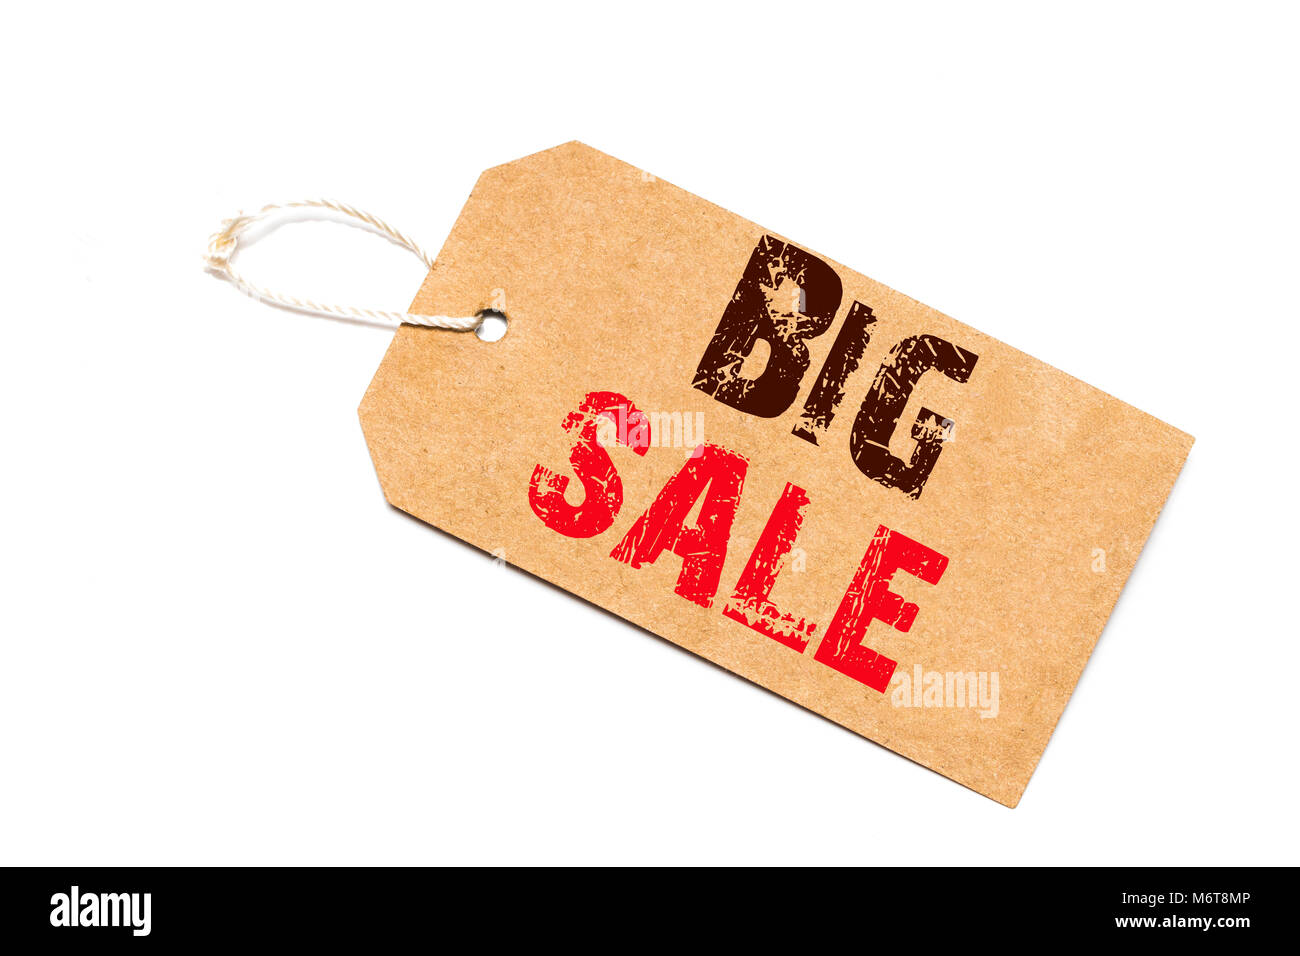 a brown paper label with the text  big sale written in it against a white   background. - Stock Image